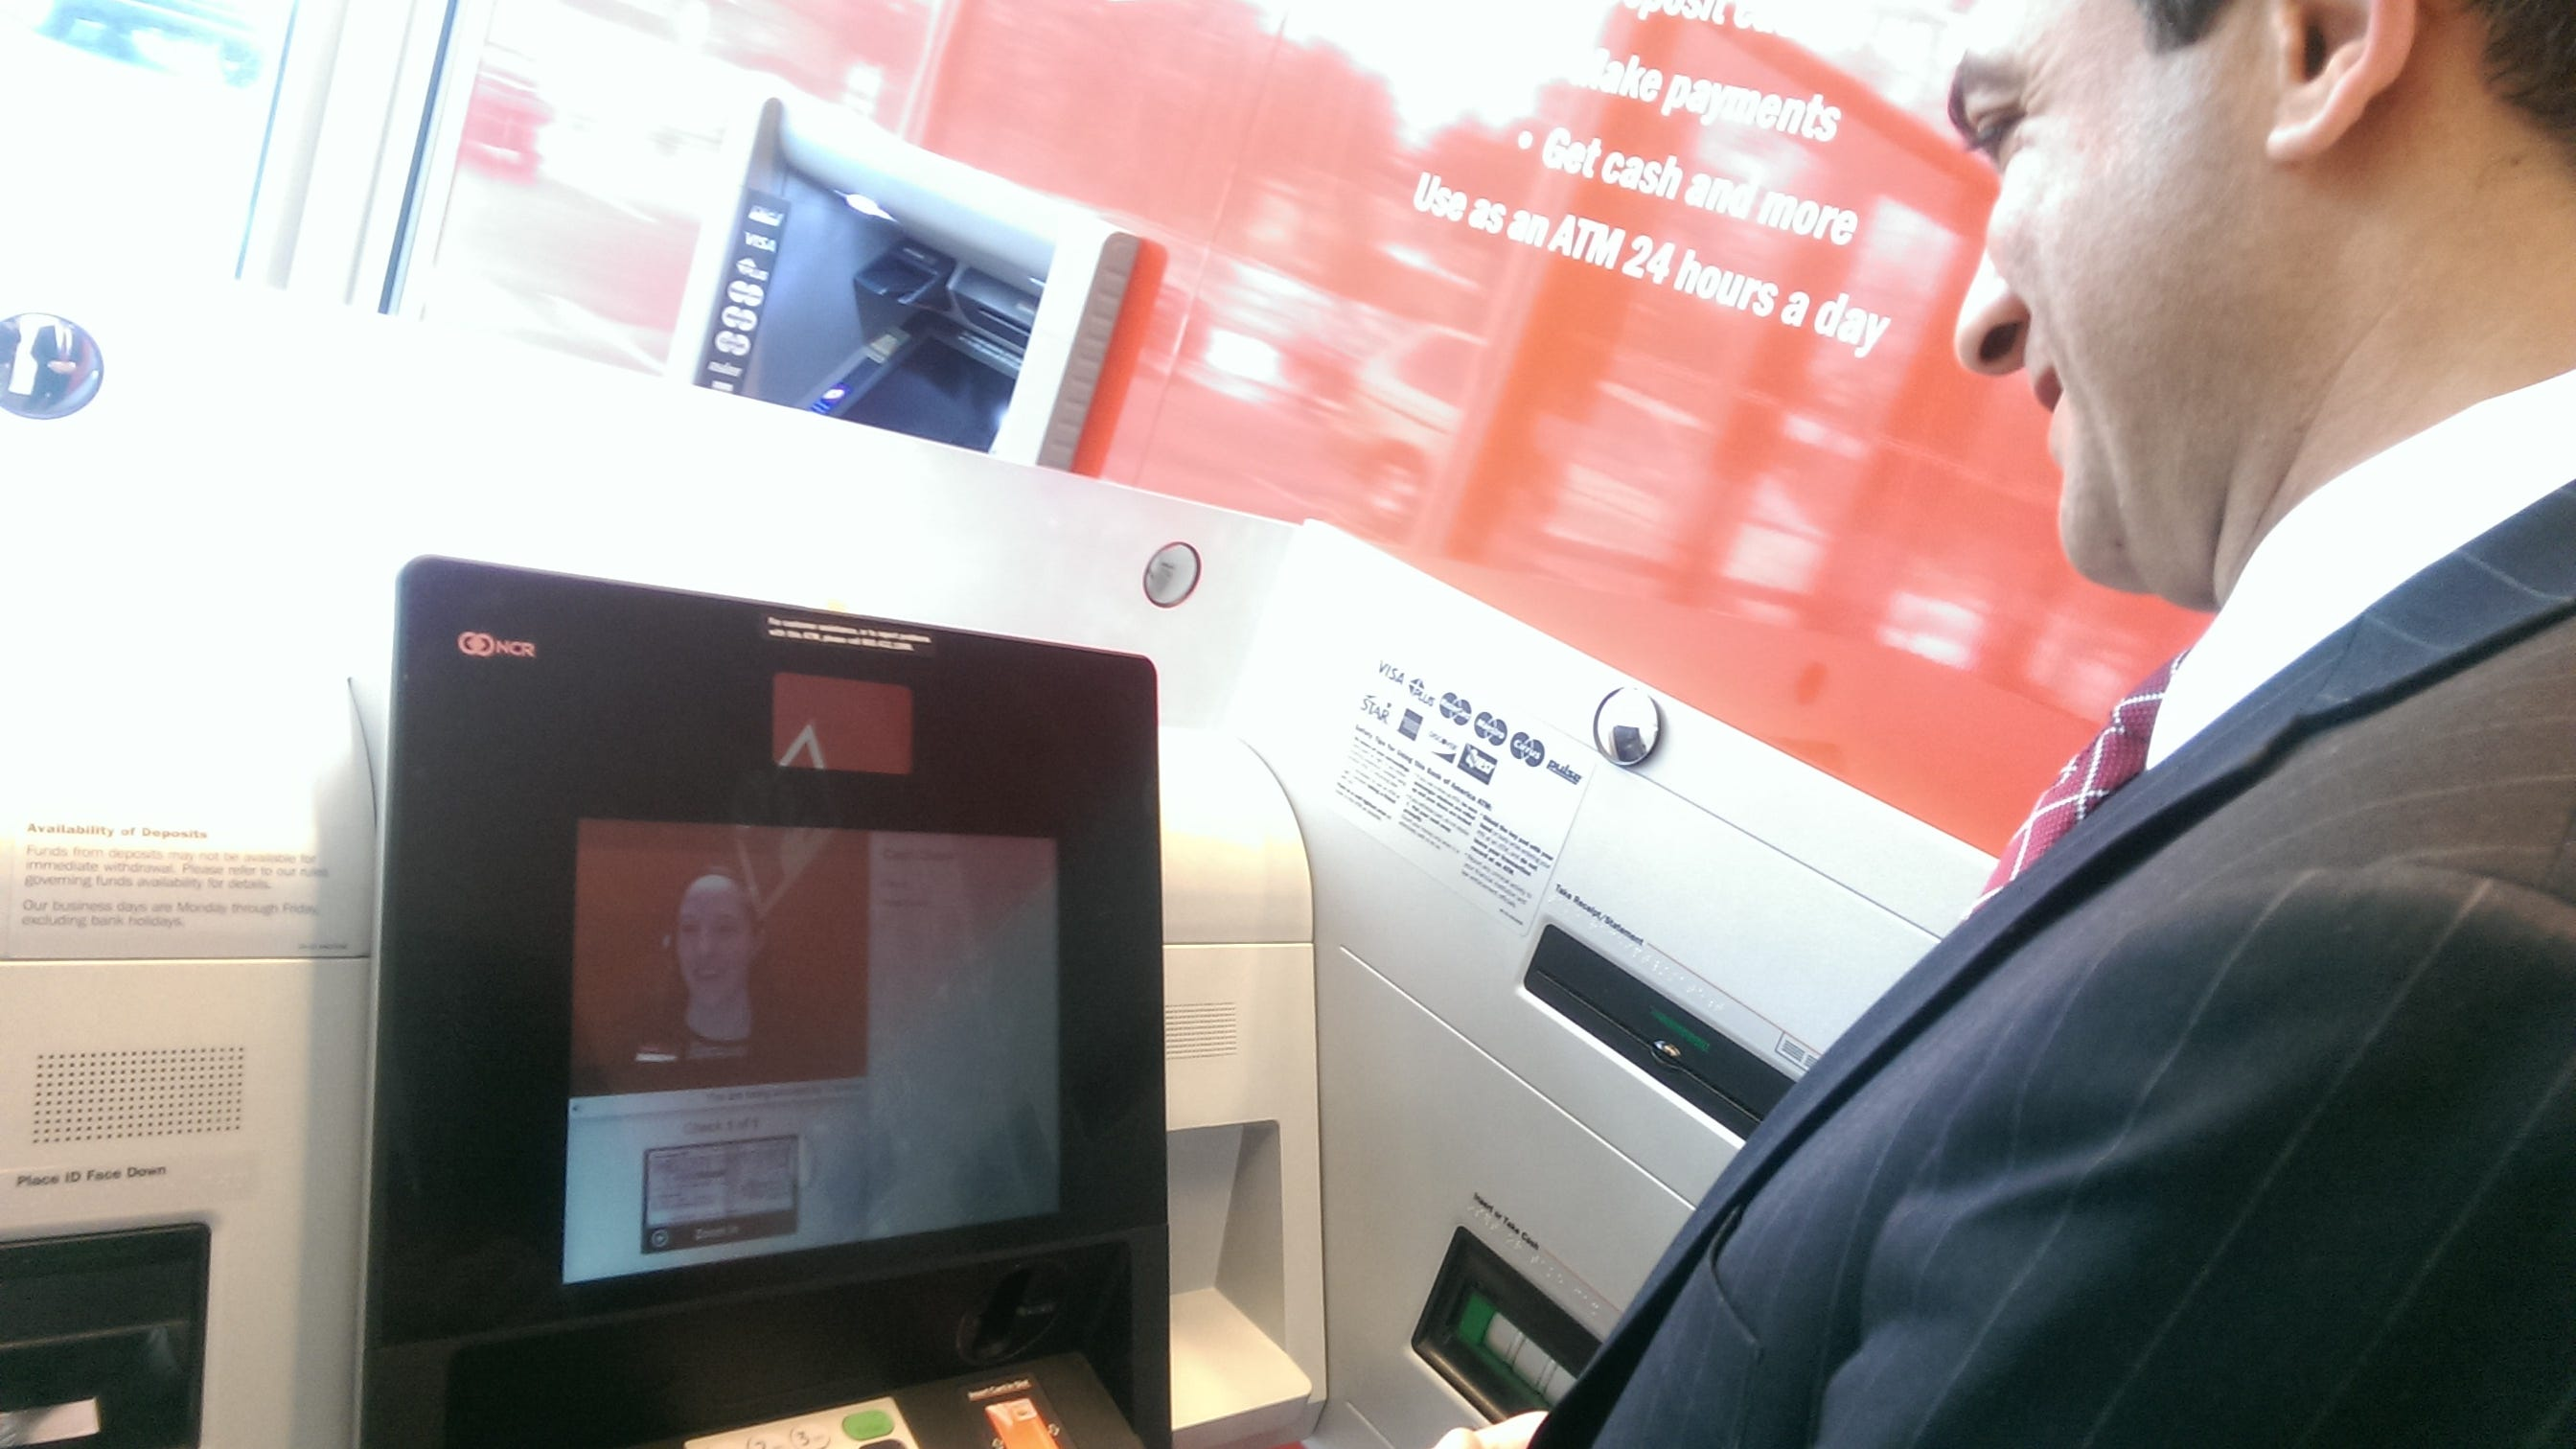 Bank Of America Atms Offer Live Tellers On Video